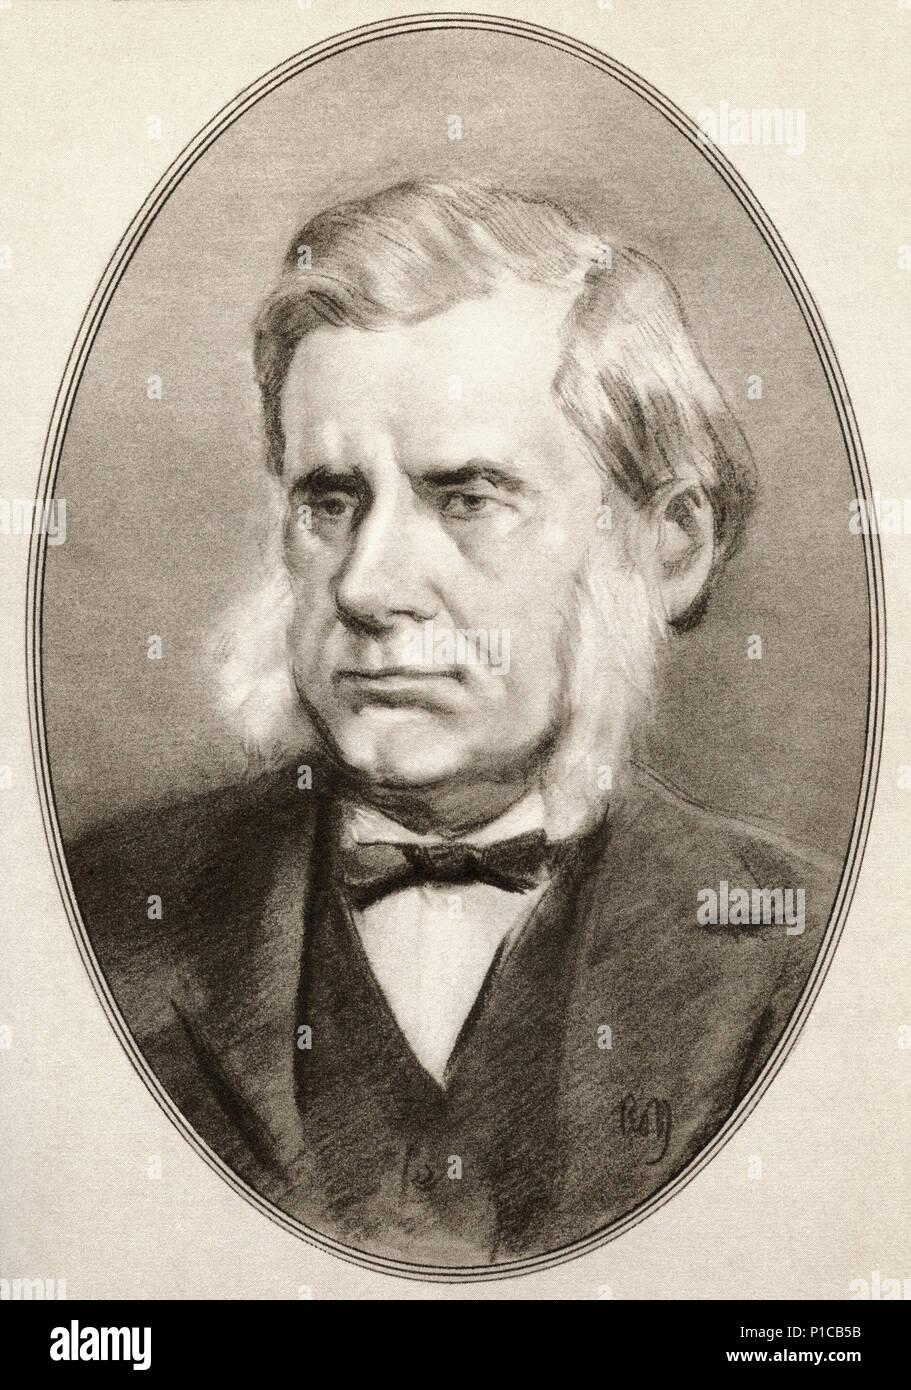 Thomas Henry Huxley, 1825 – 1895.  English biologist specialising in comparative anatomy.  Illustration by Gordon Ross, American artist and illustrator (1873-1946), from Living Biographies of Great Scientists. - Stock Image